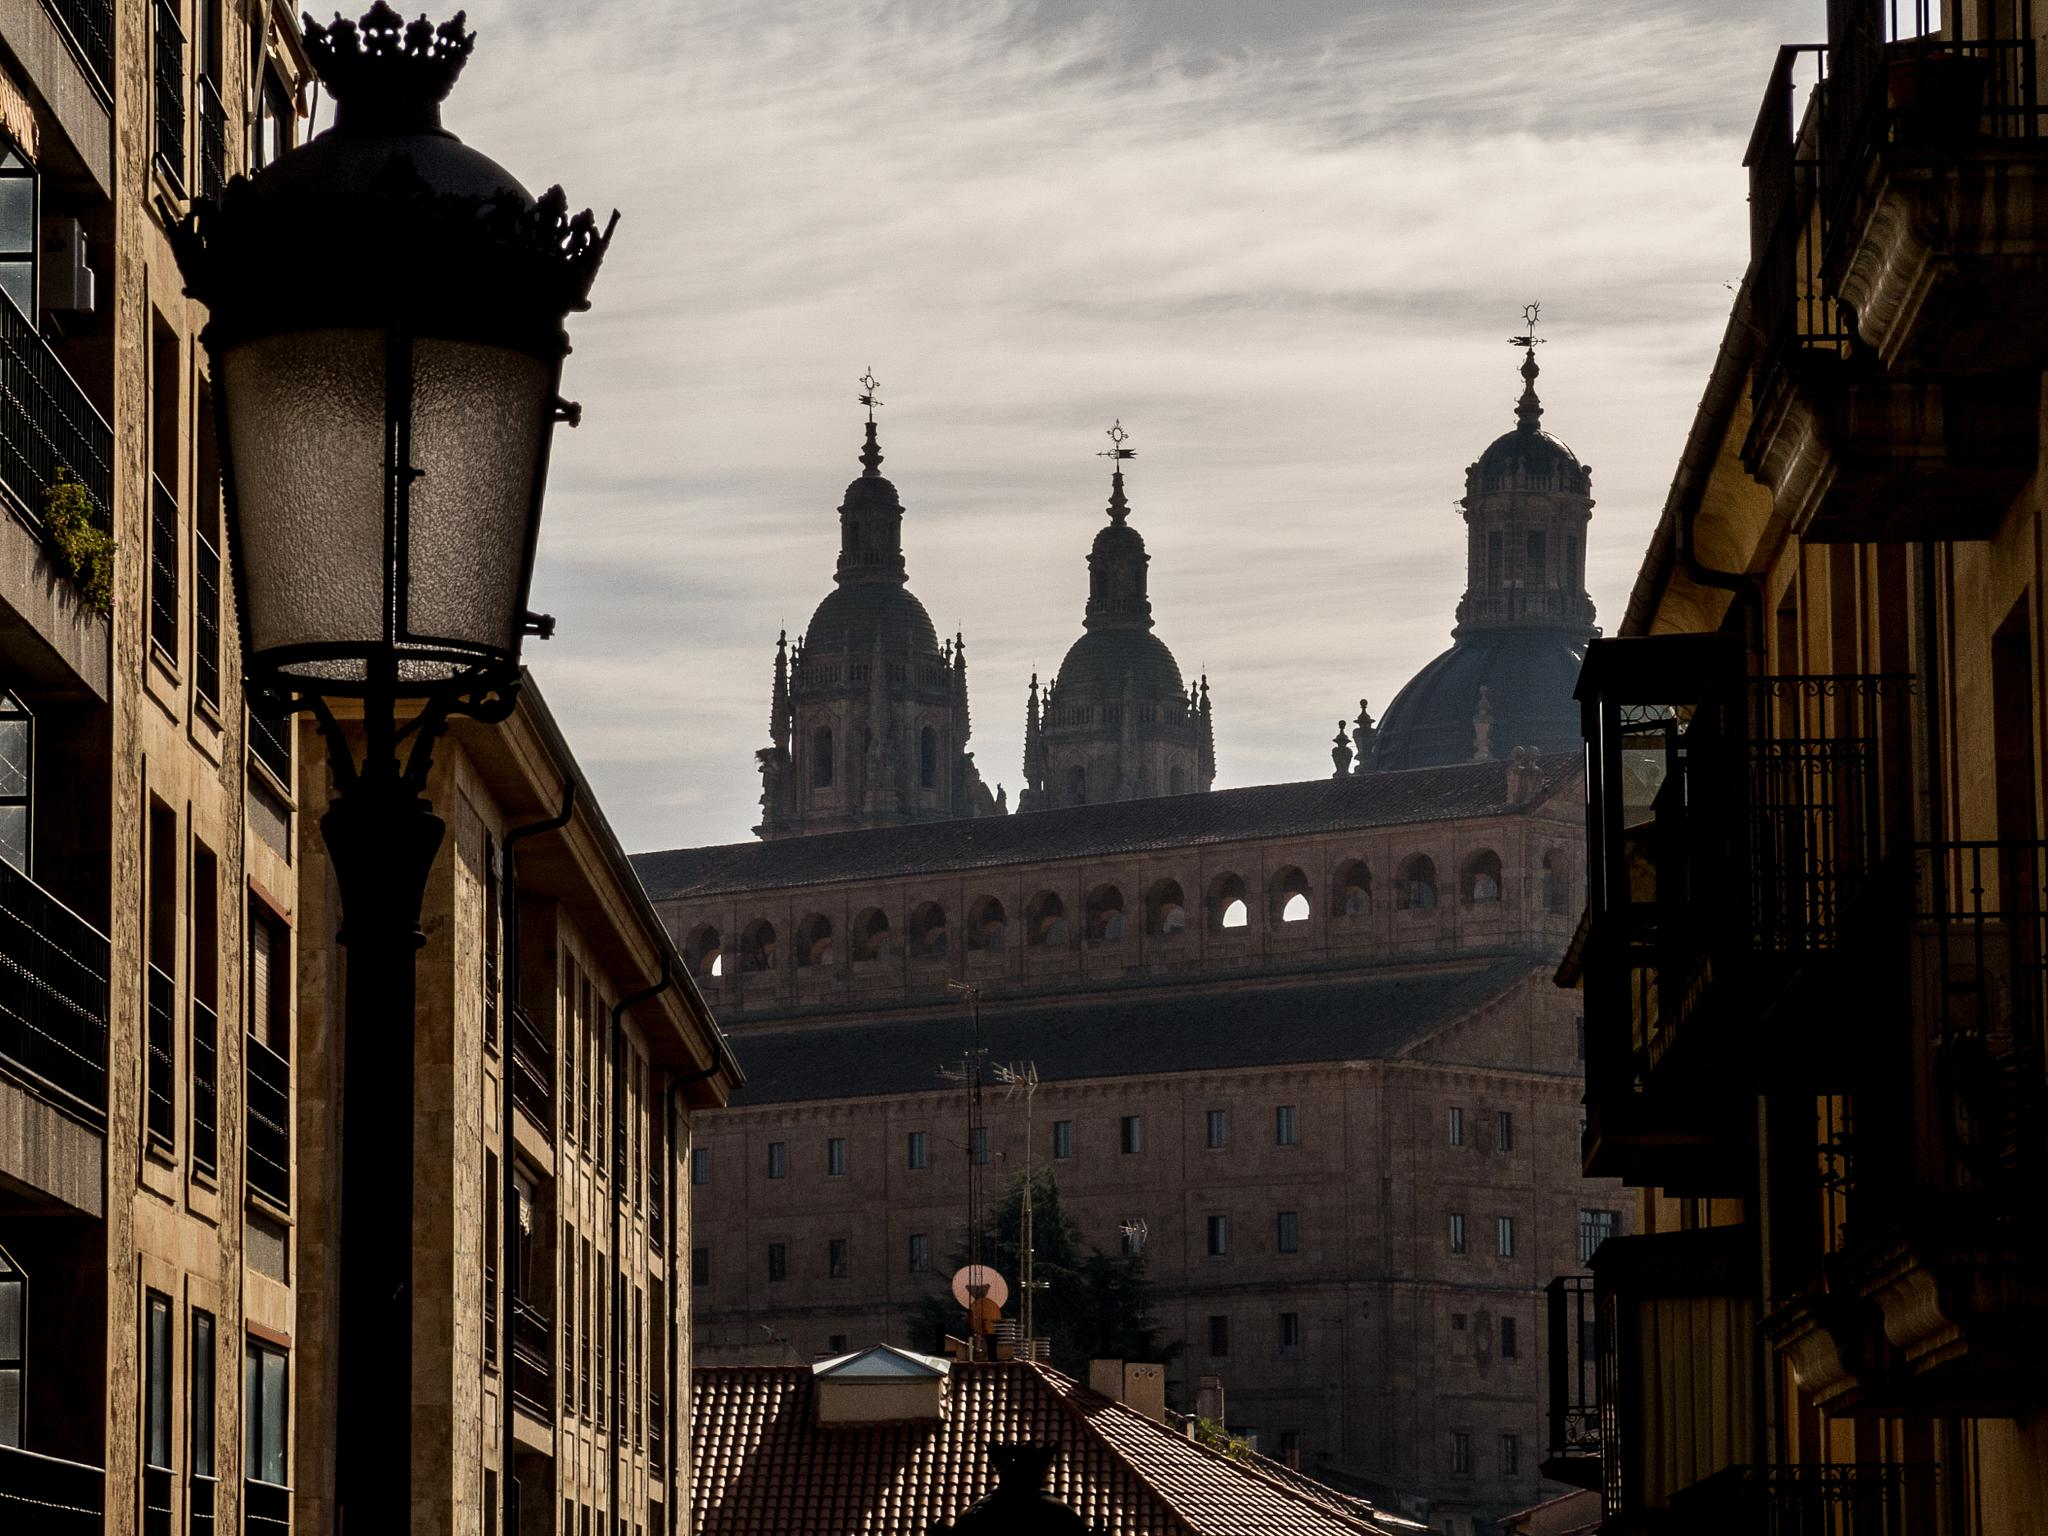 Spires of Salamanca by stephenhops